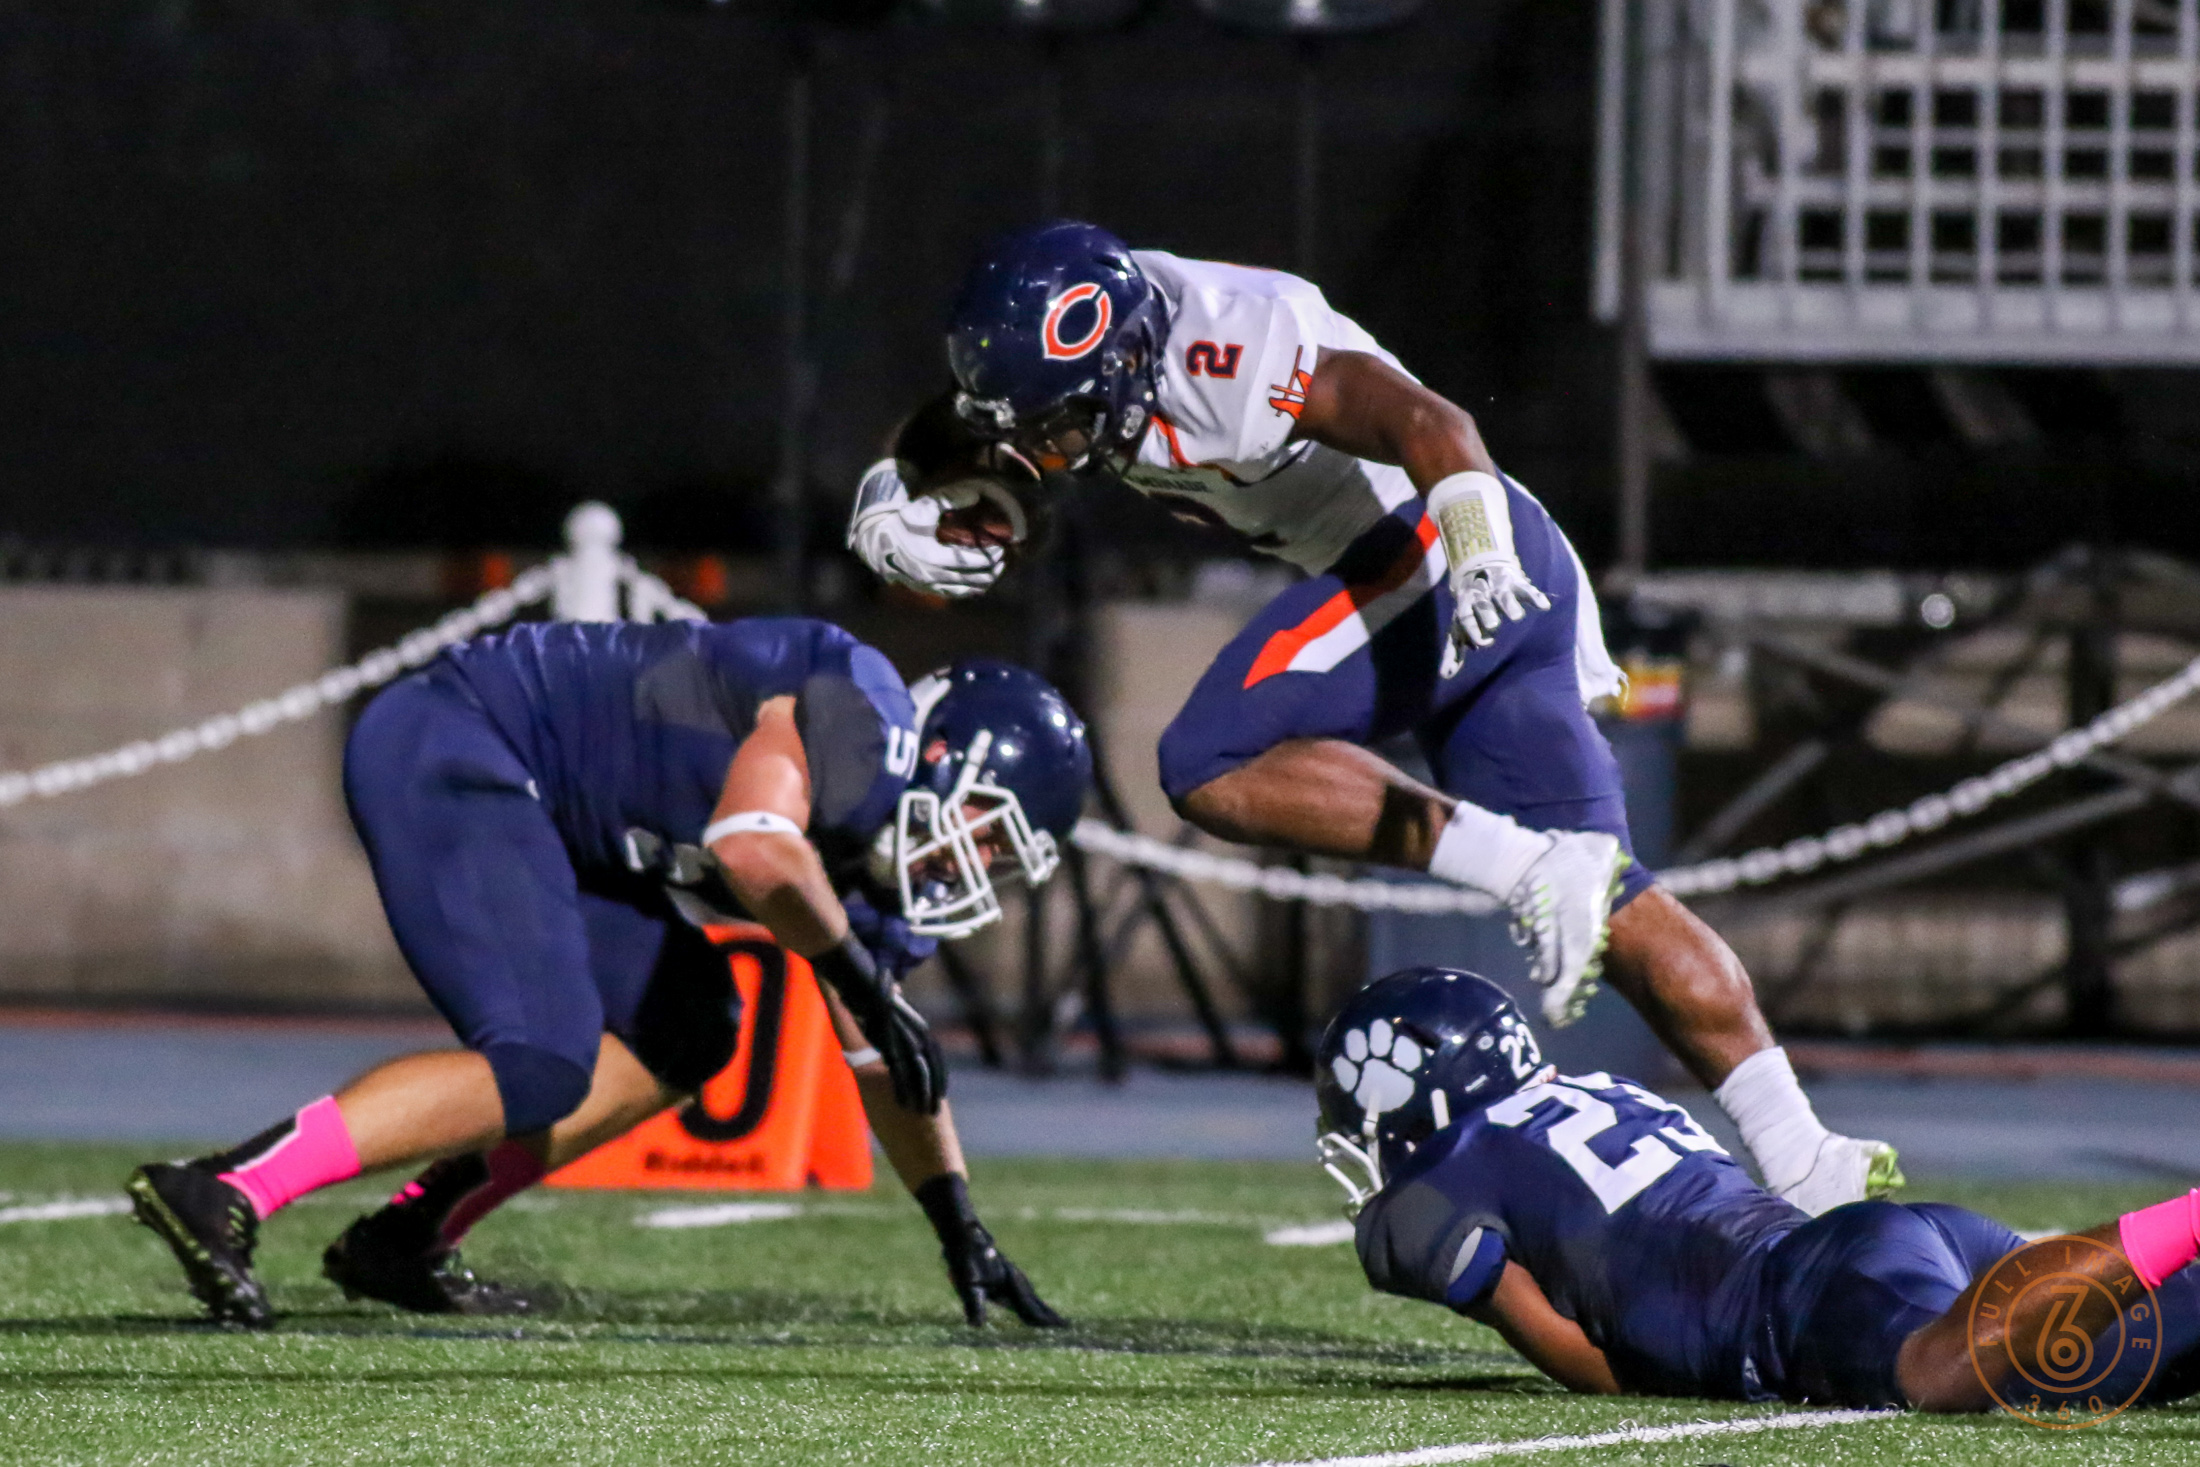 loyola grinds out the victory fi news tj pledger hurdling cubs to set up 1q touchdown photo by jevone moore